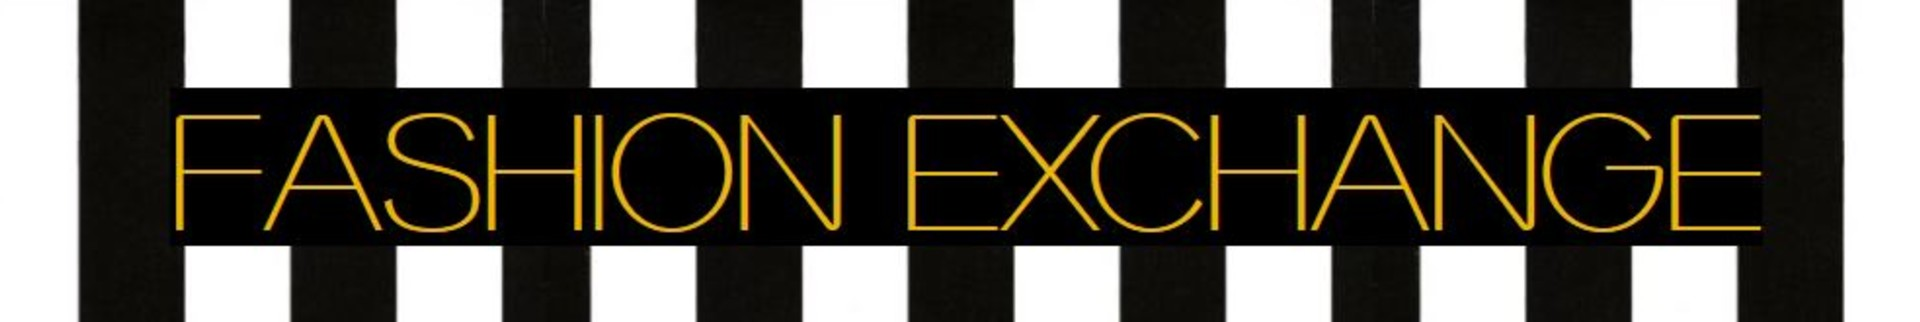 Fashion Exchange's banner image.